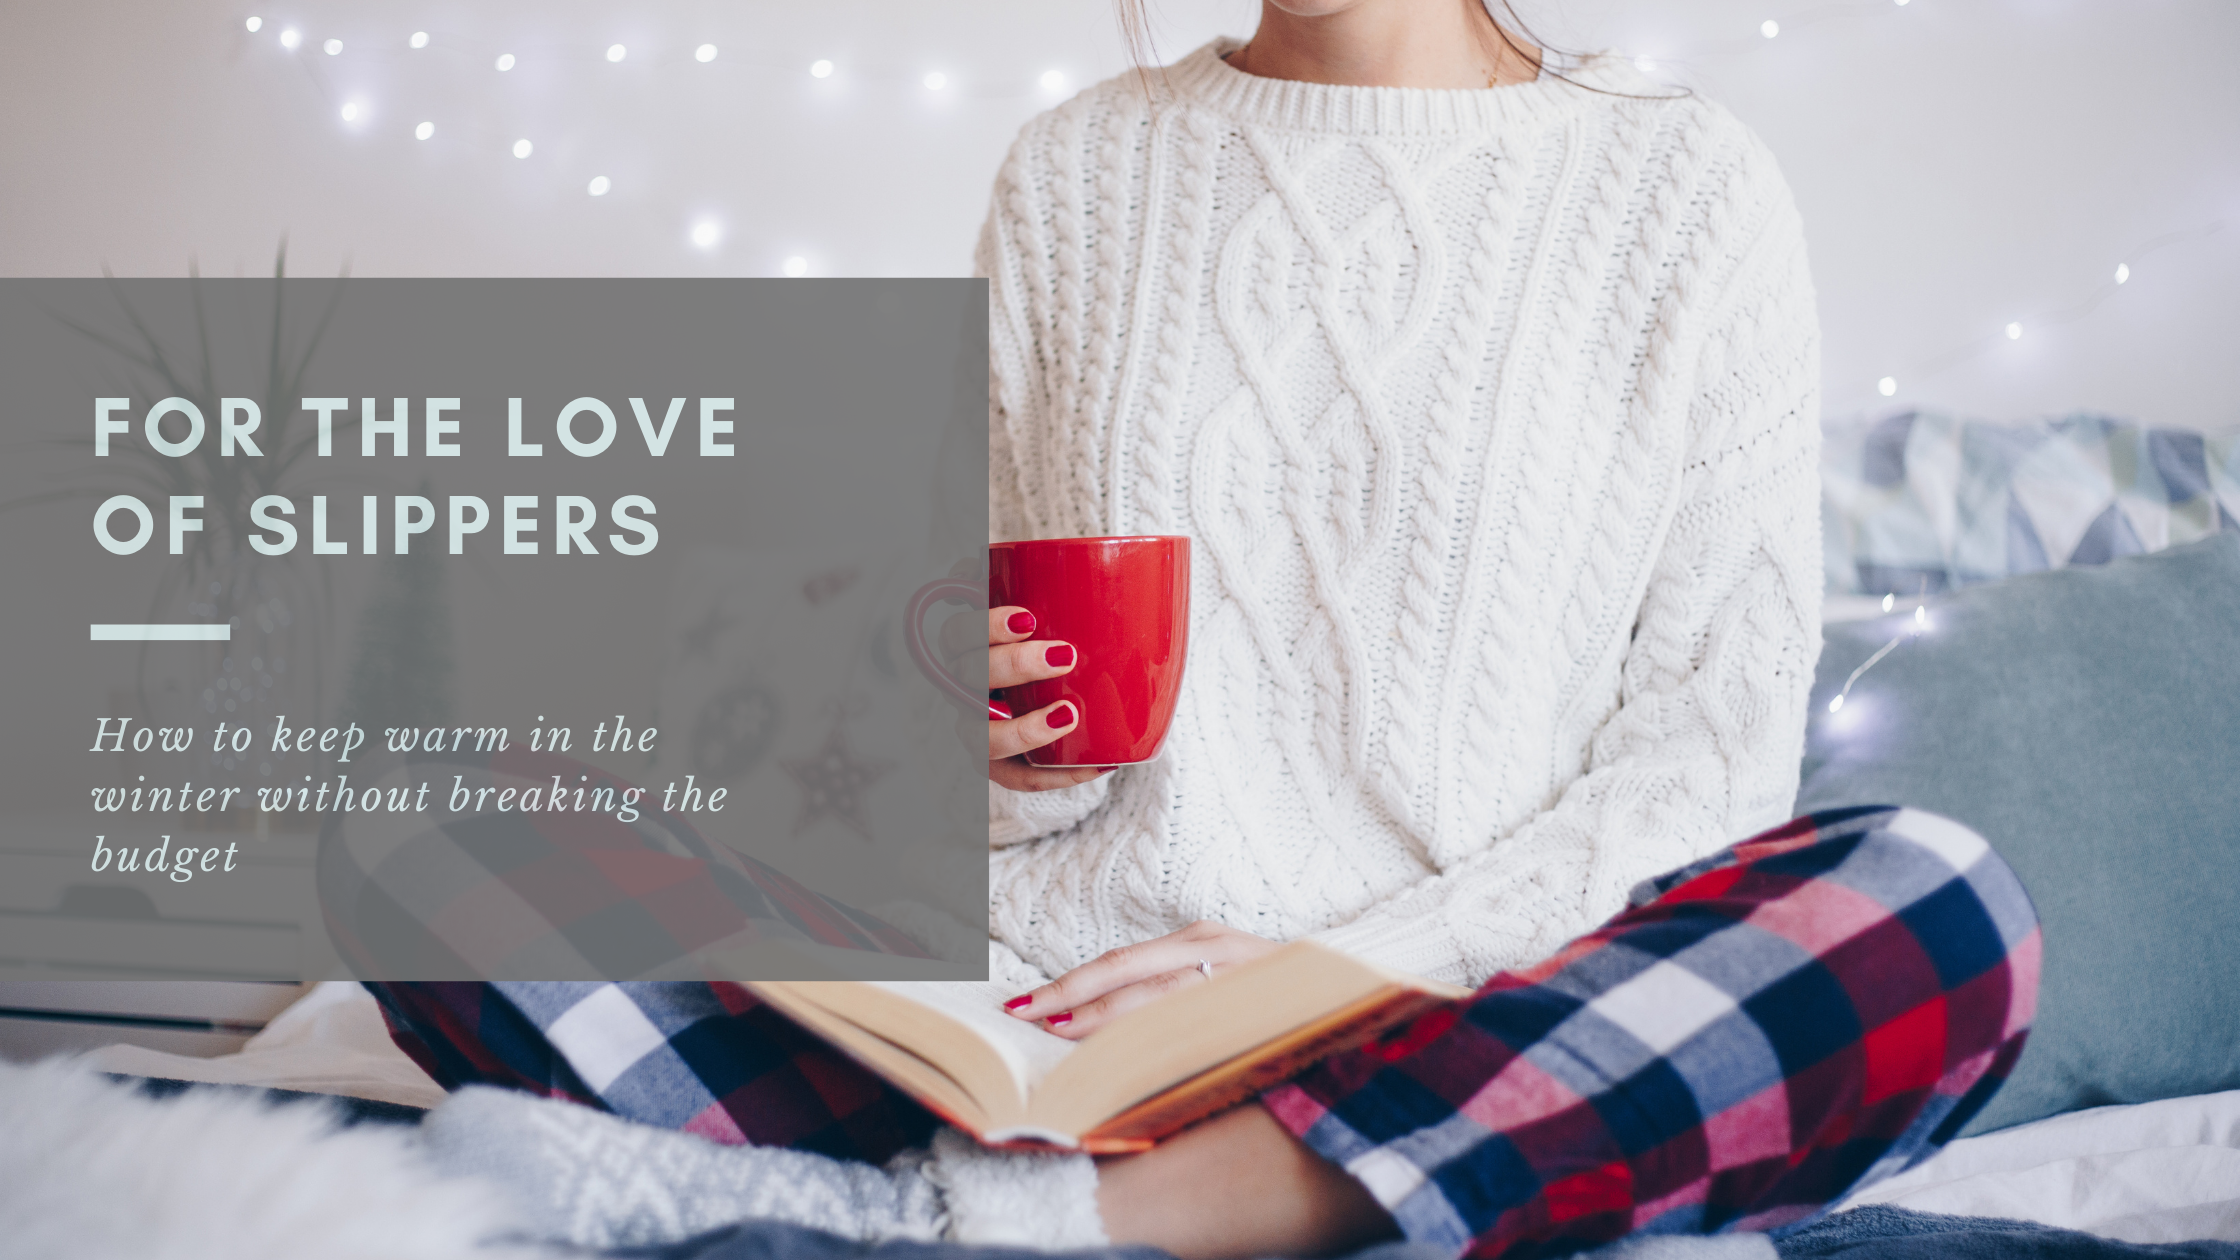 For The Love of Slippers: How I Learned to Change My Indoor Habits to Save Money